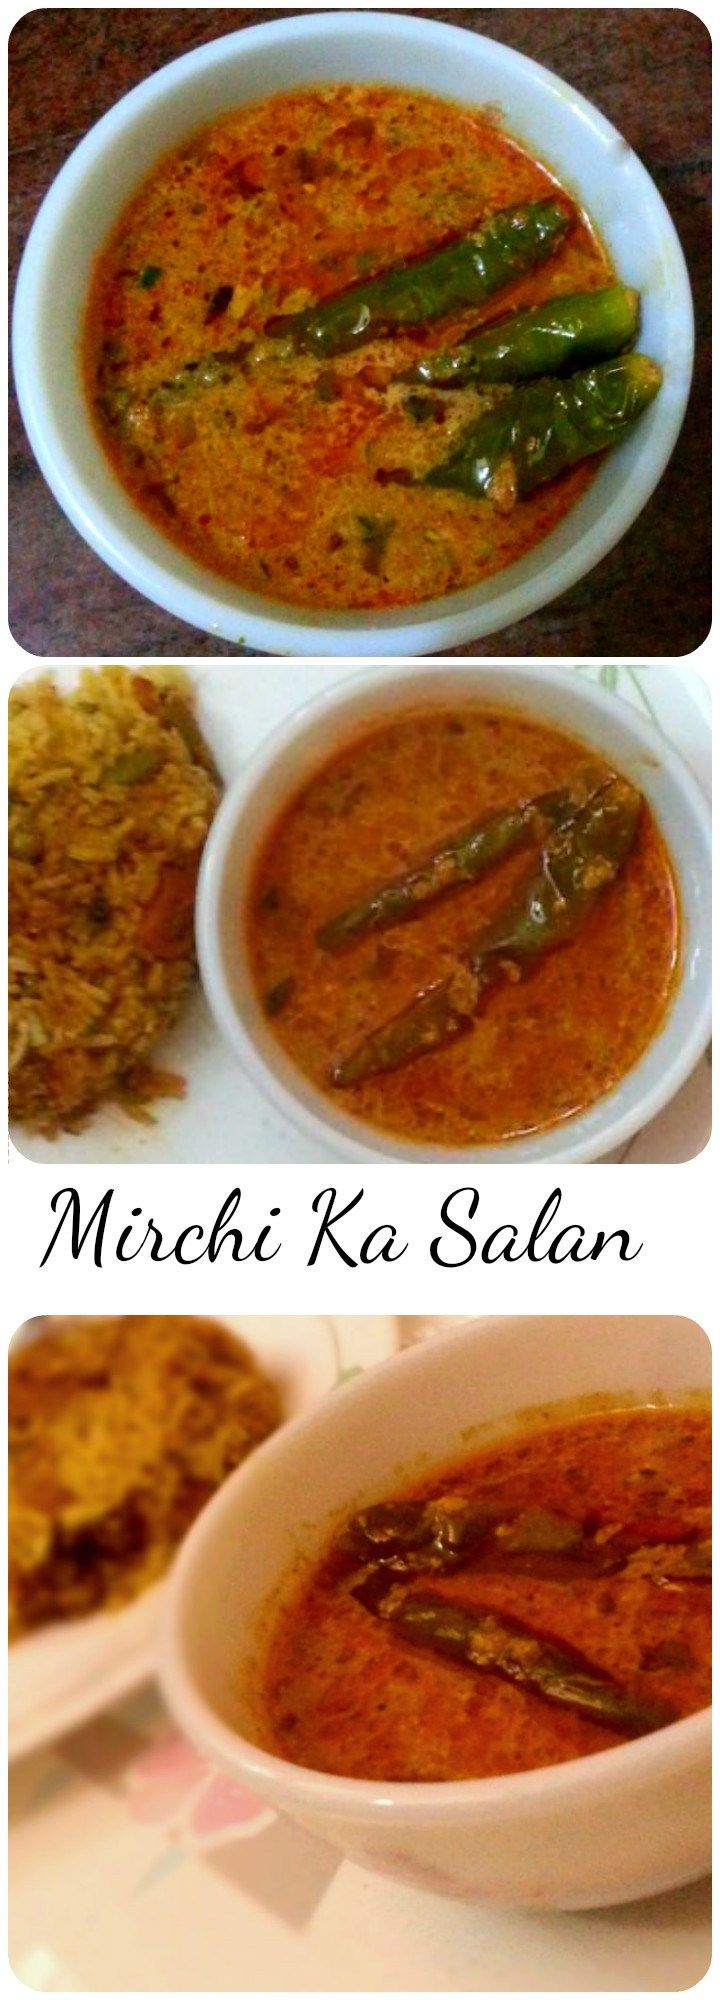 Mirchi Ka Salan is a gravy dish in wish shallow fried Green Chilies are cooked in Tangy gravy made from Coconut,Onions,Sesame seeds, peanuts with other spices added.